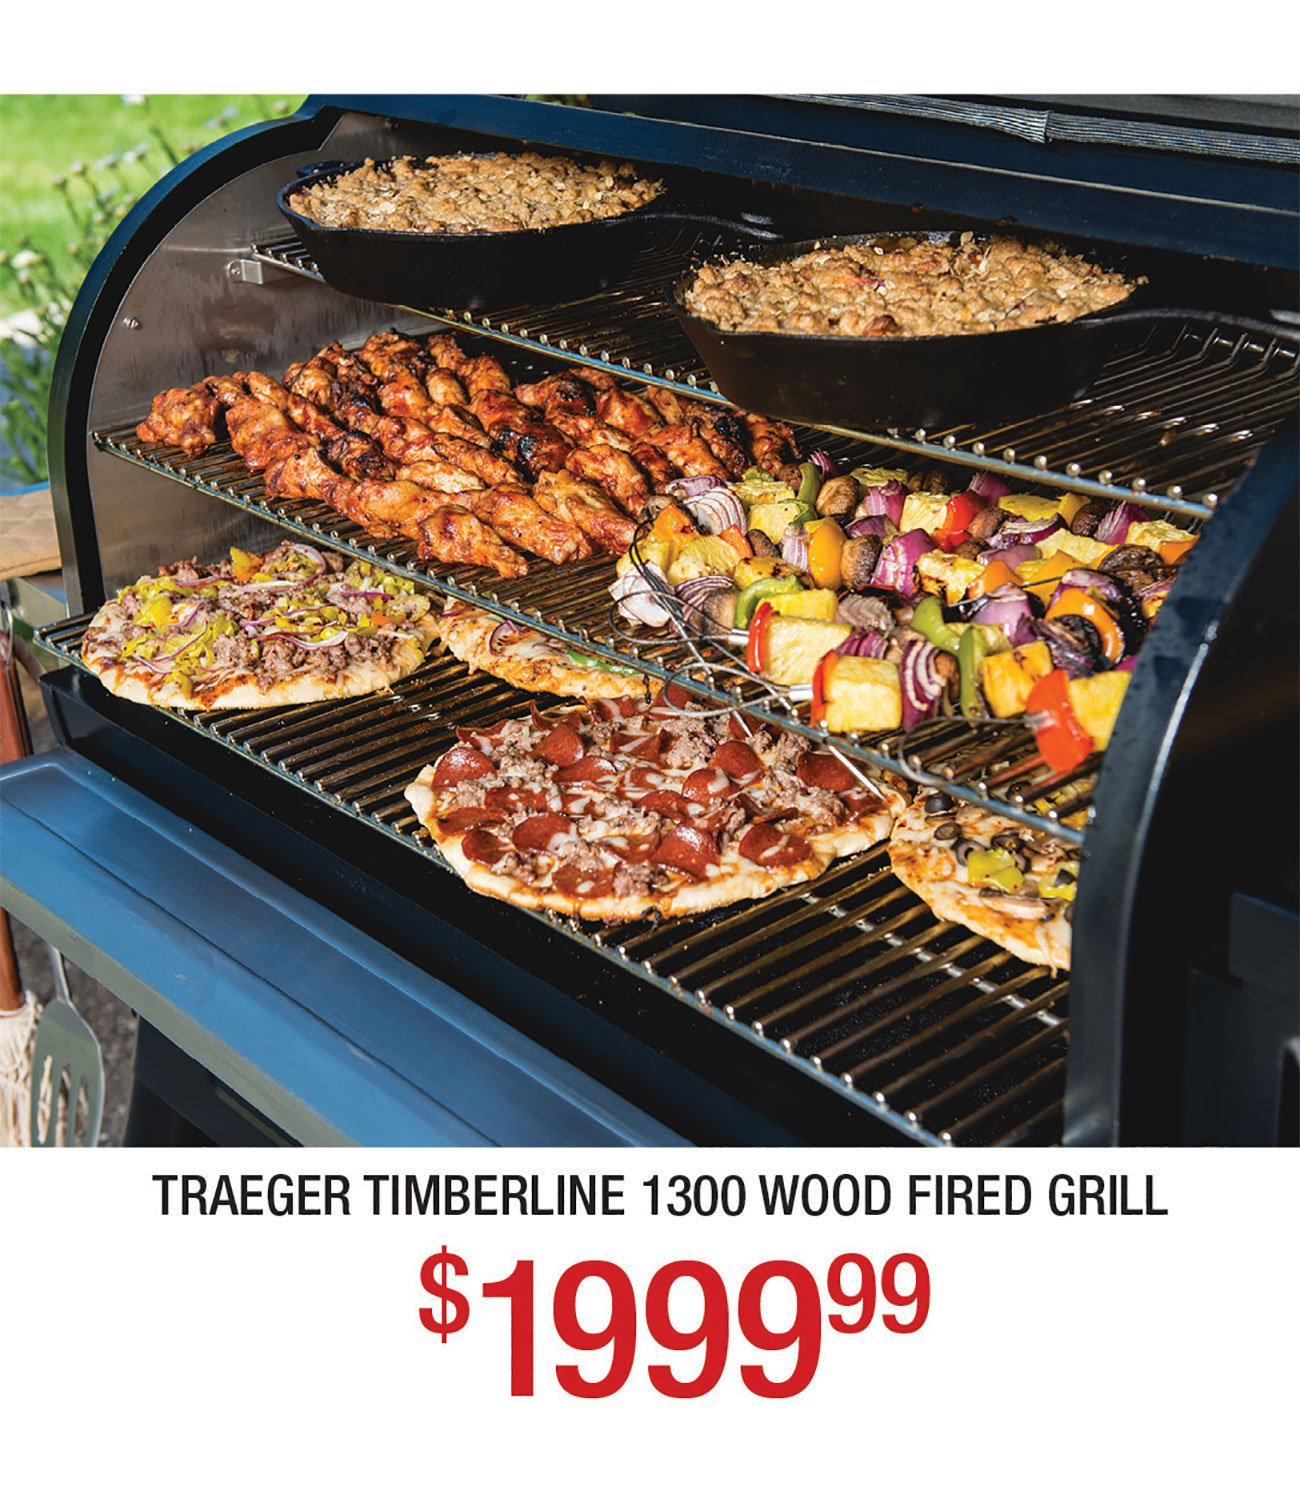 Timberline-1300-Grill